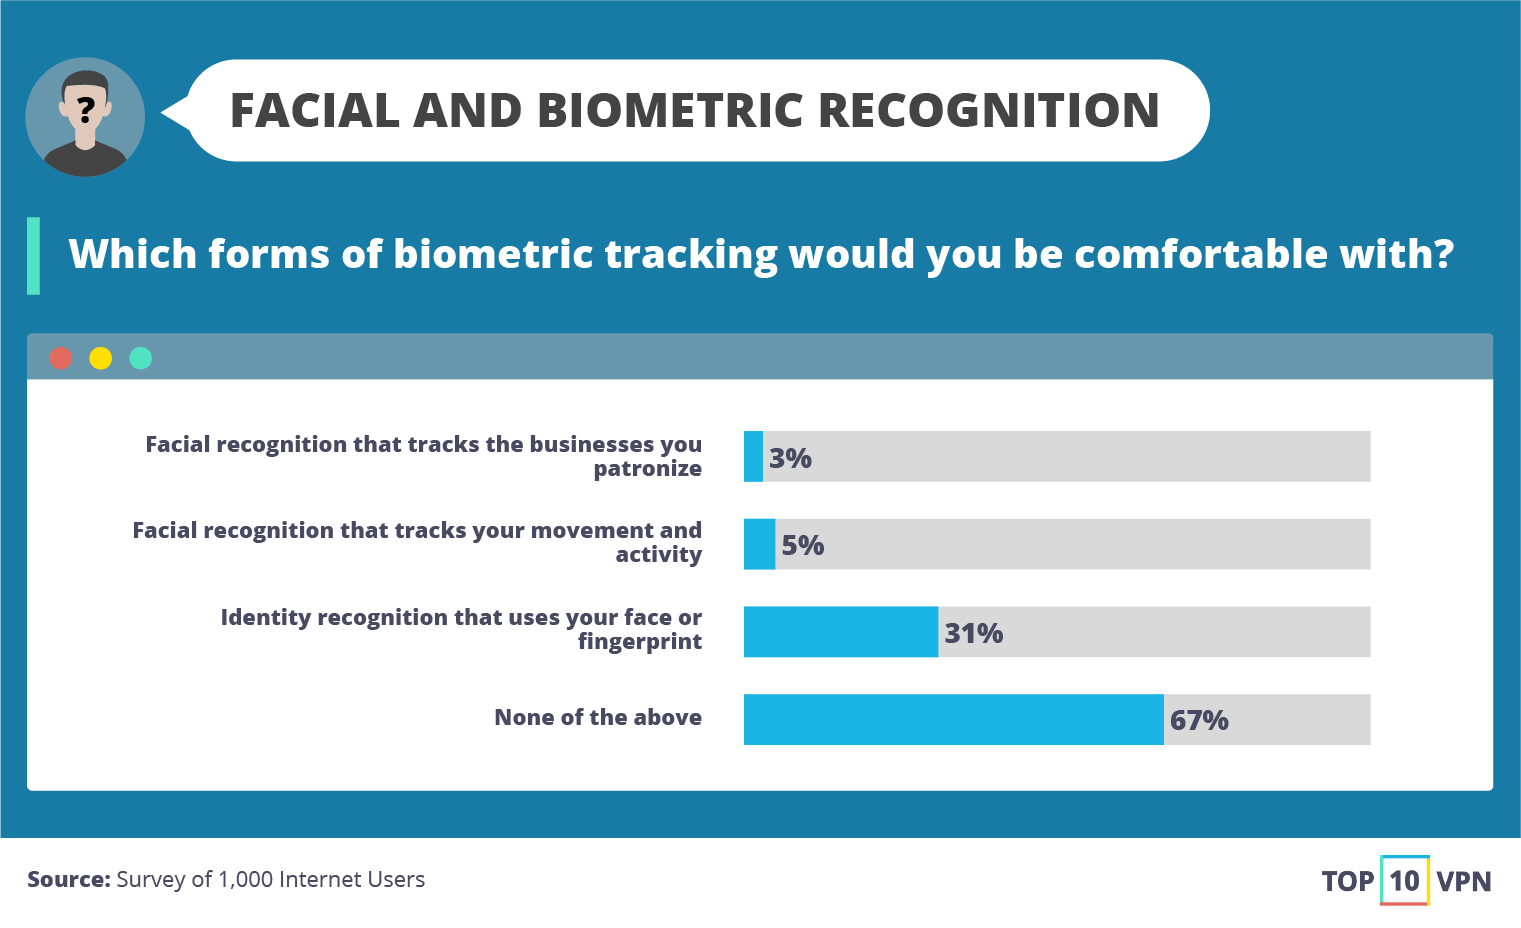 Facial and Biometric Recognition